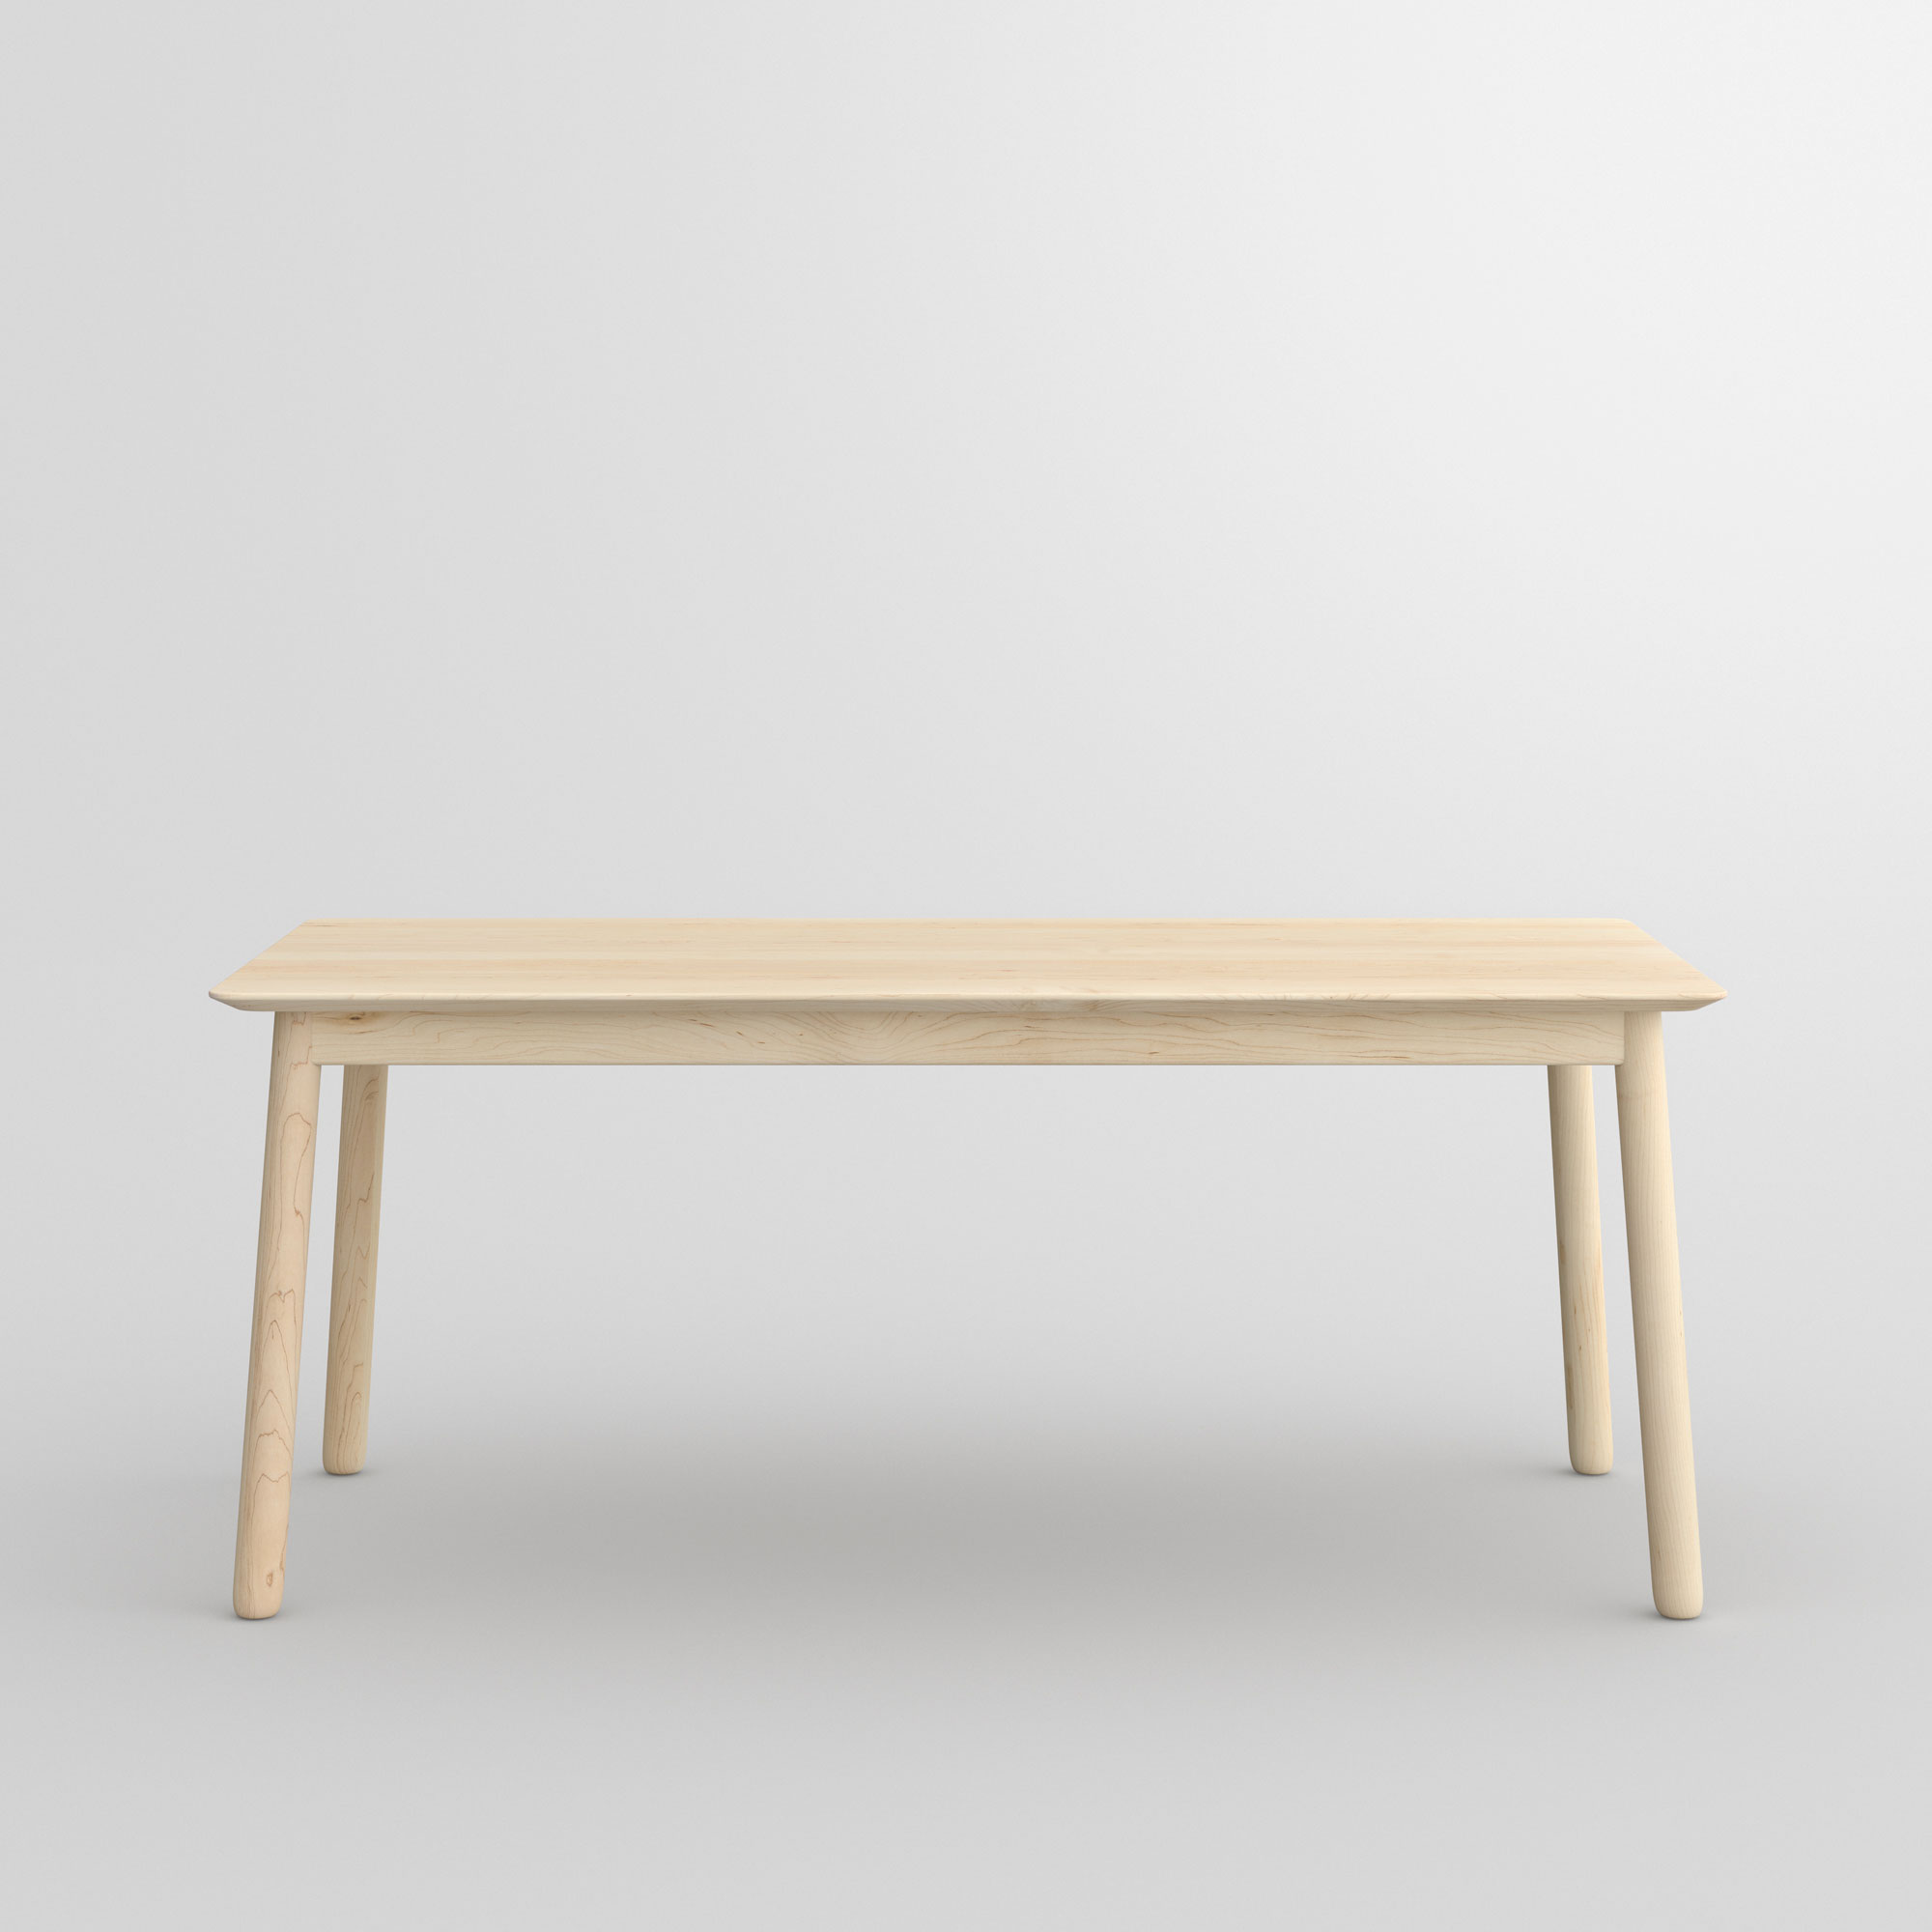 Style Wood Table LOCA cam2 custom made in solid wood by vitamin design